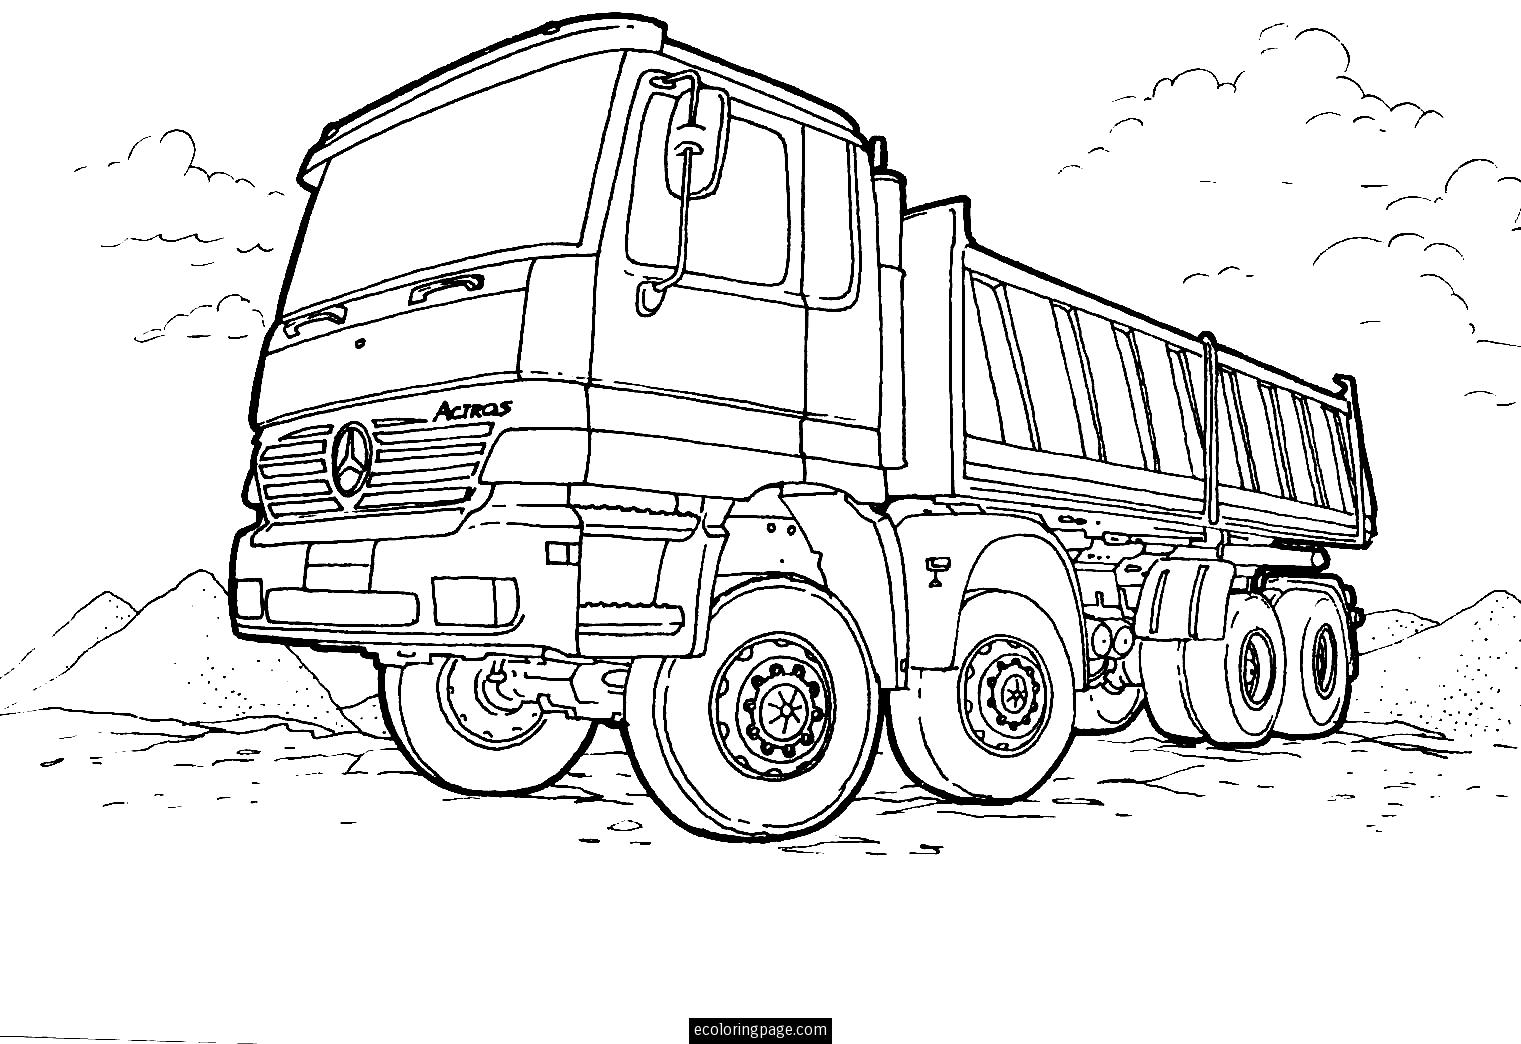 coloring pages for kids truck blippi free colouring pages kids truck for pages coloring